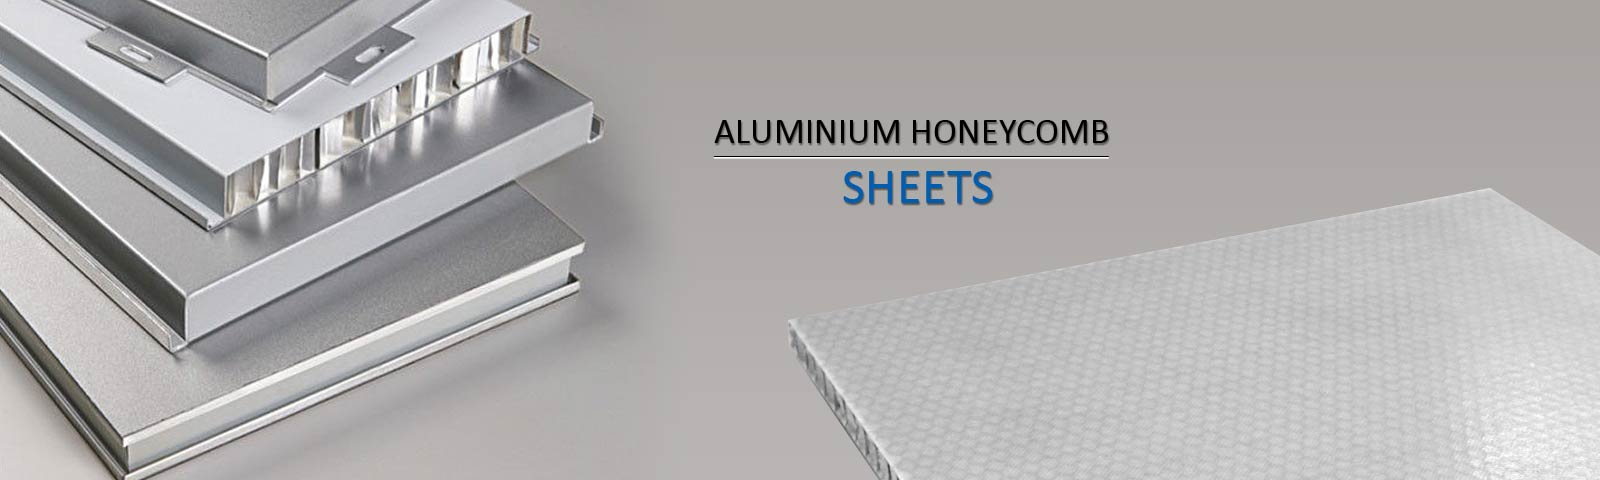 Aluminium Honeycom Sheets Manufacturer and Supplier in Banaskantha